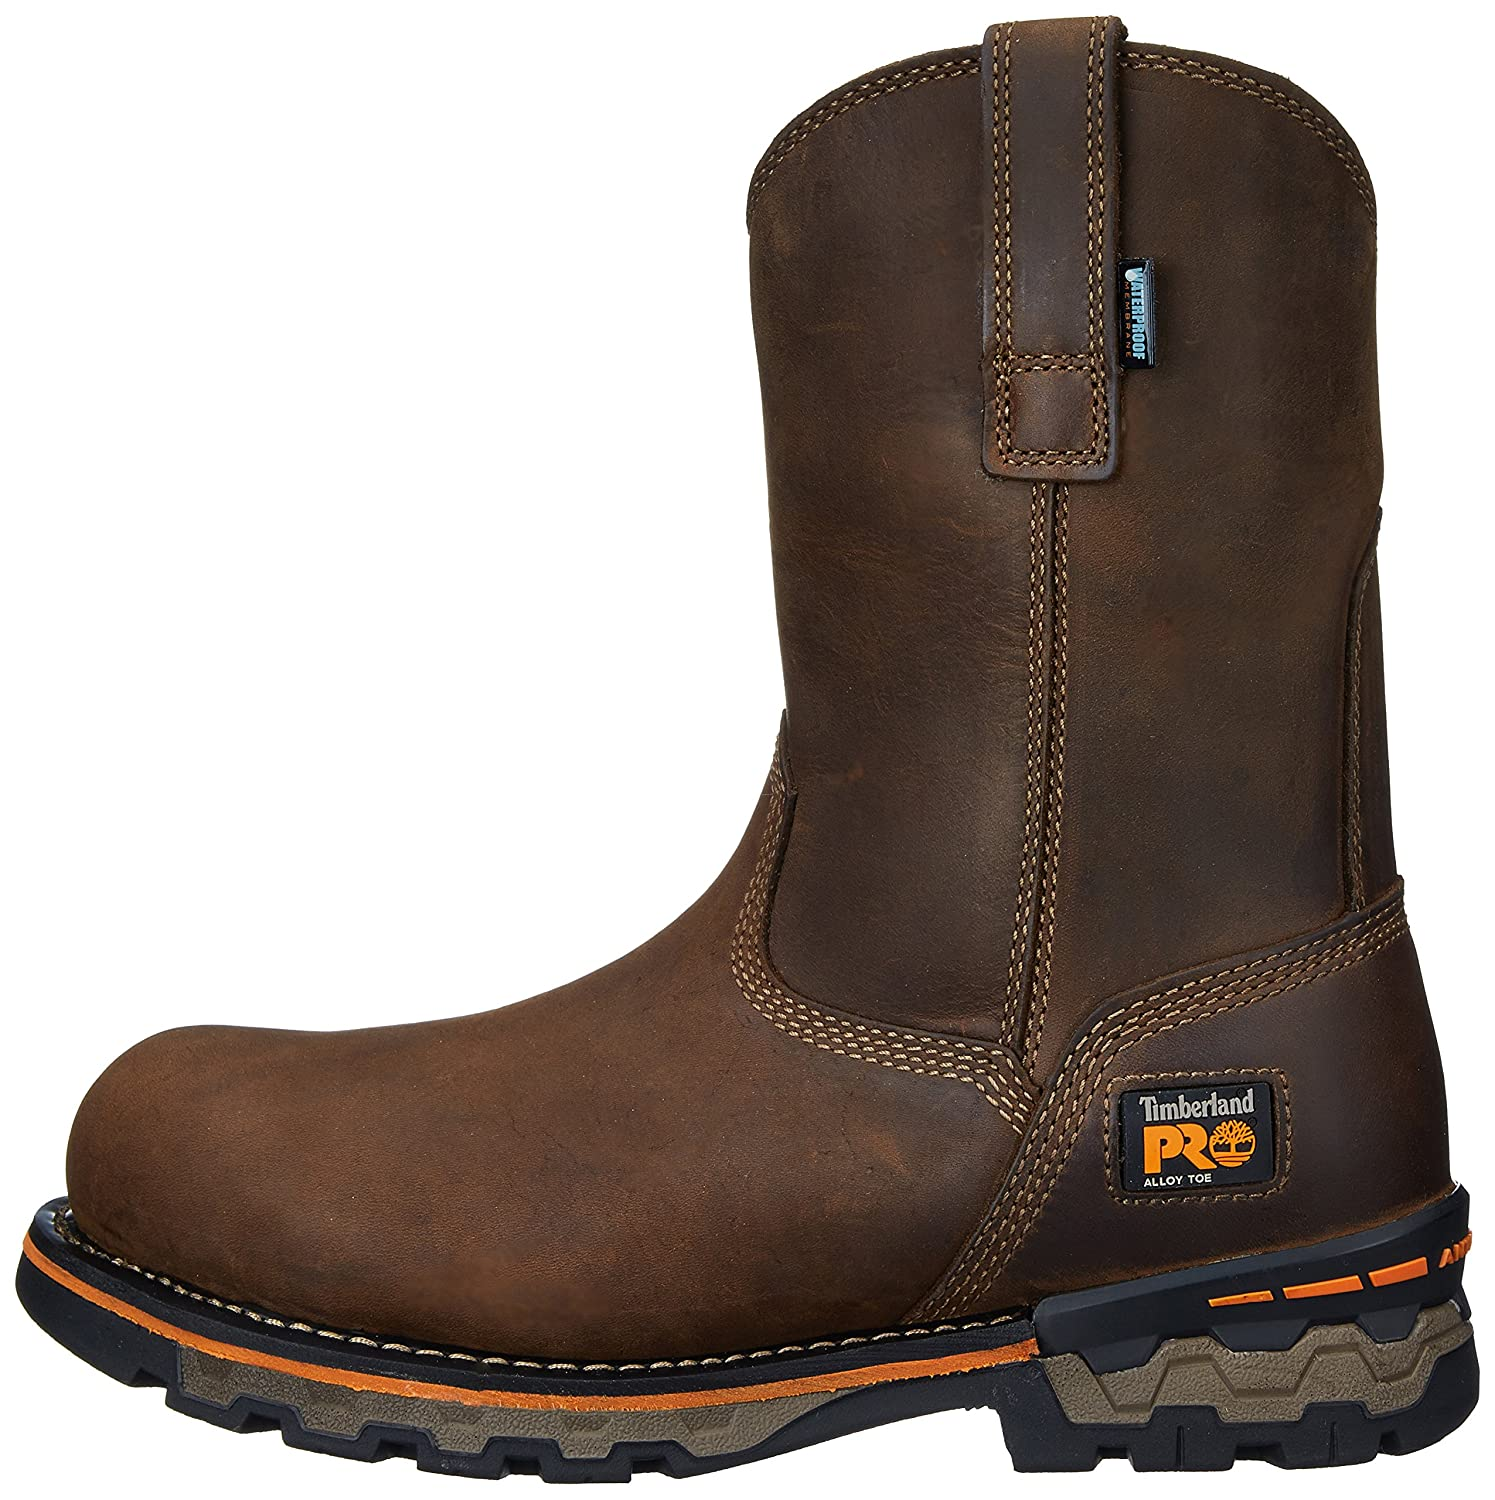 8cc4524ca70 Amazon.com: Timberland PRO Men's Mortar Pull-On CSA Composite-Toe ...